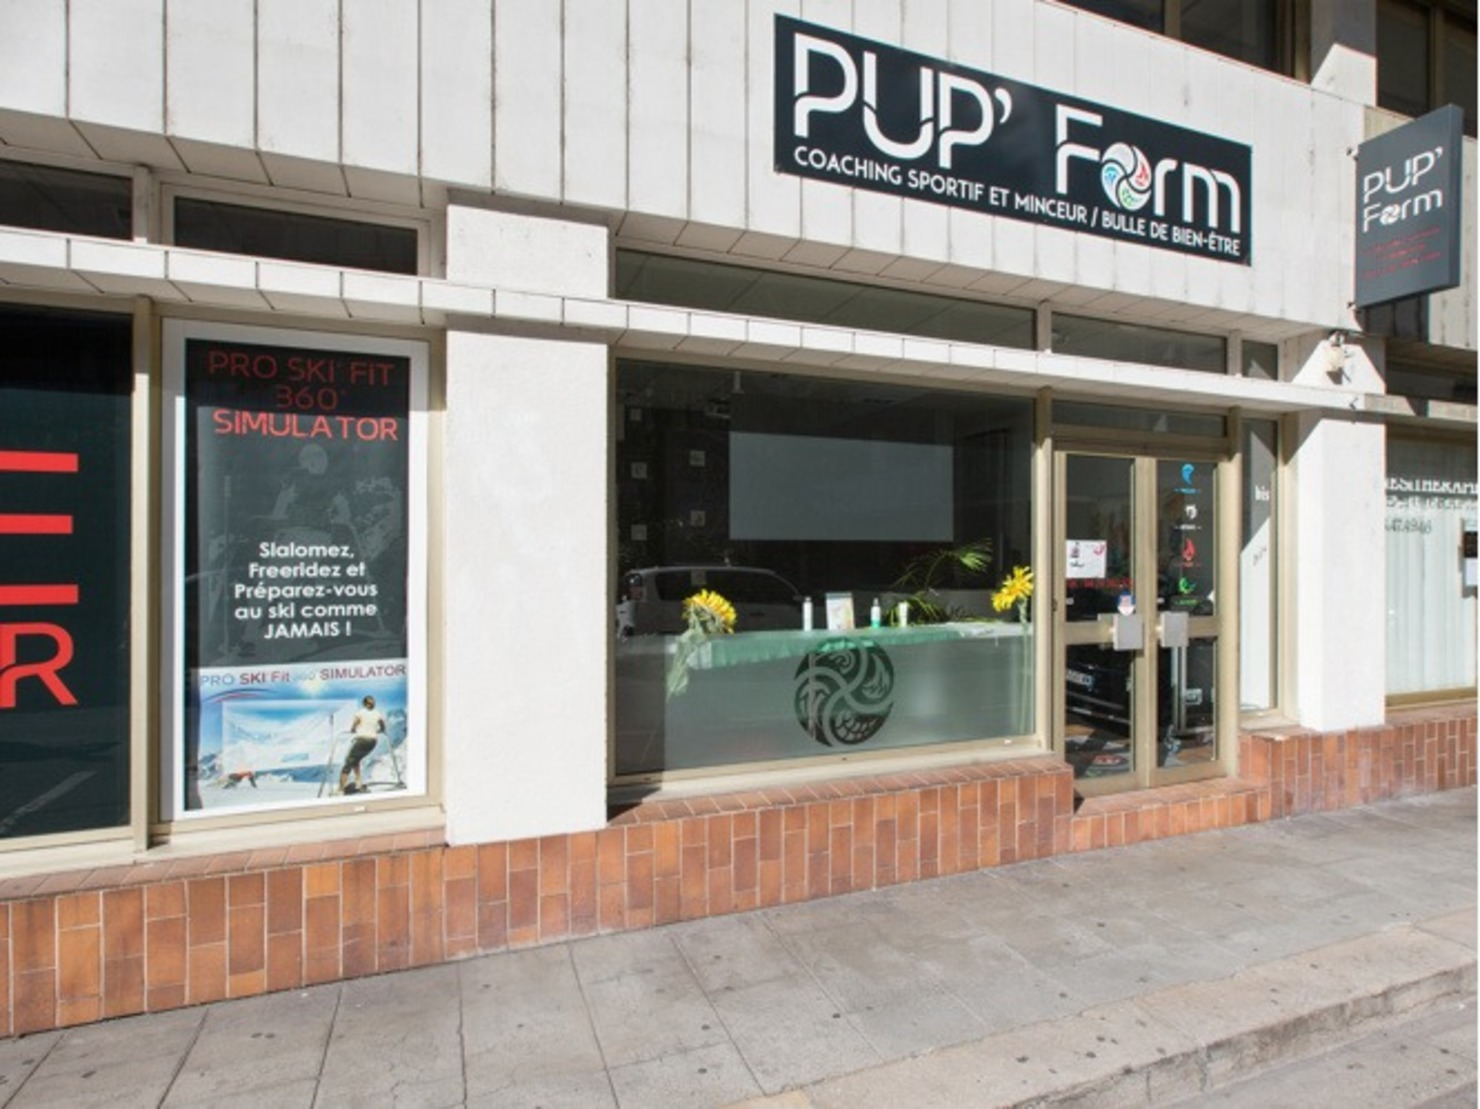 PUP'Form Grenoble